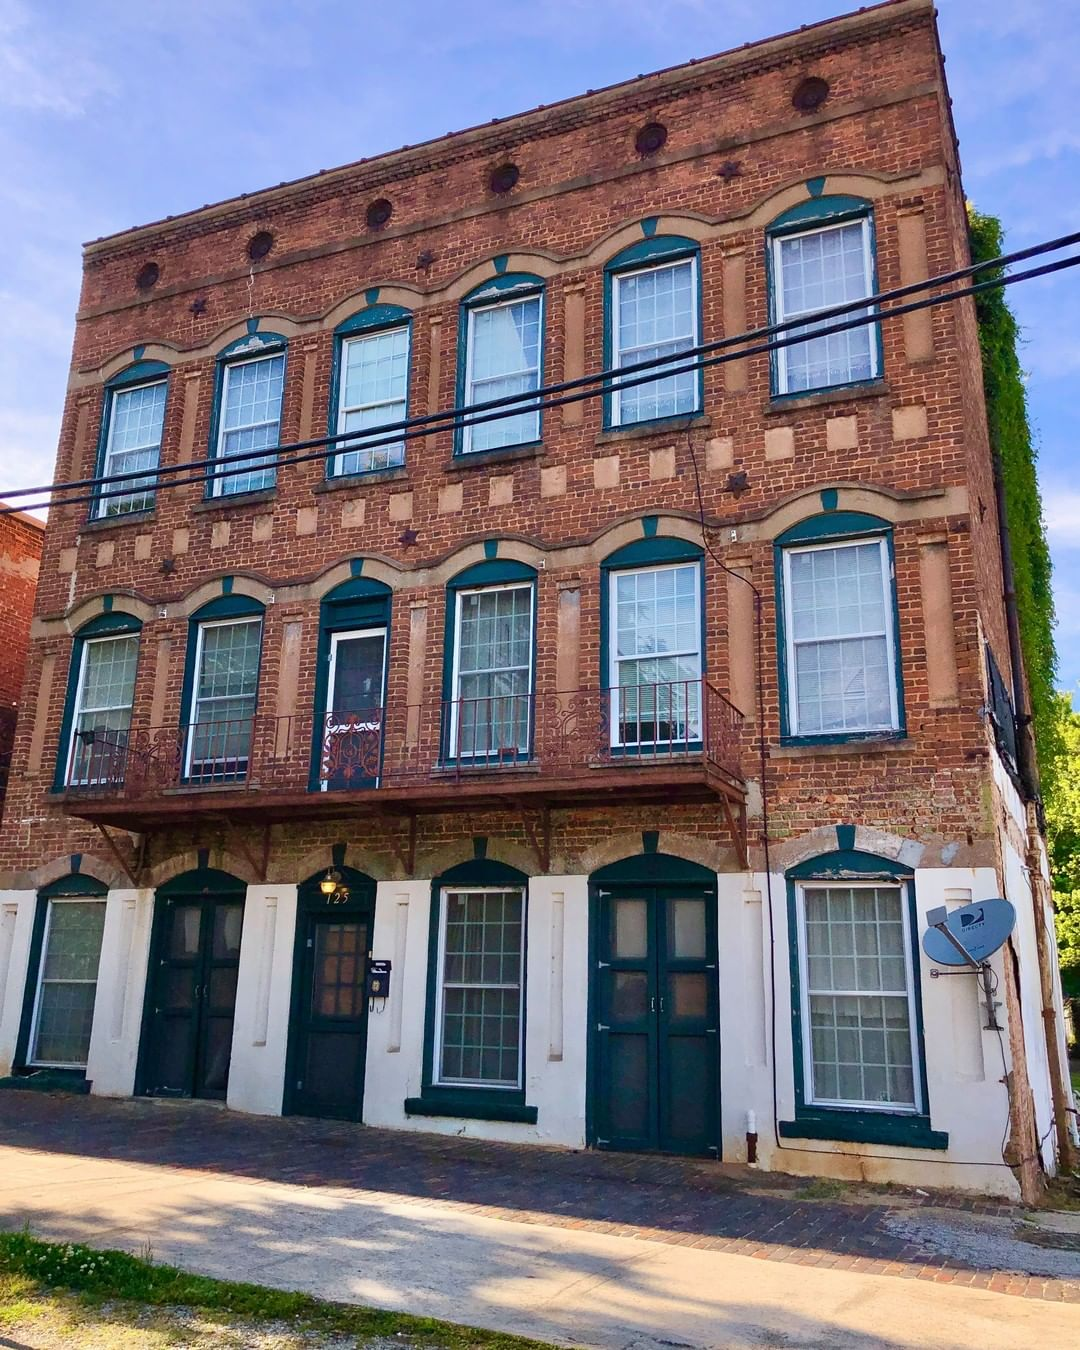 The Brown Franklin Building was built in 1890 as a grocery and restaurant. Brown Franklin was a prominent african-american restaurateur in Laurens